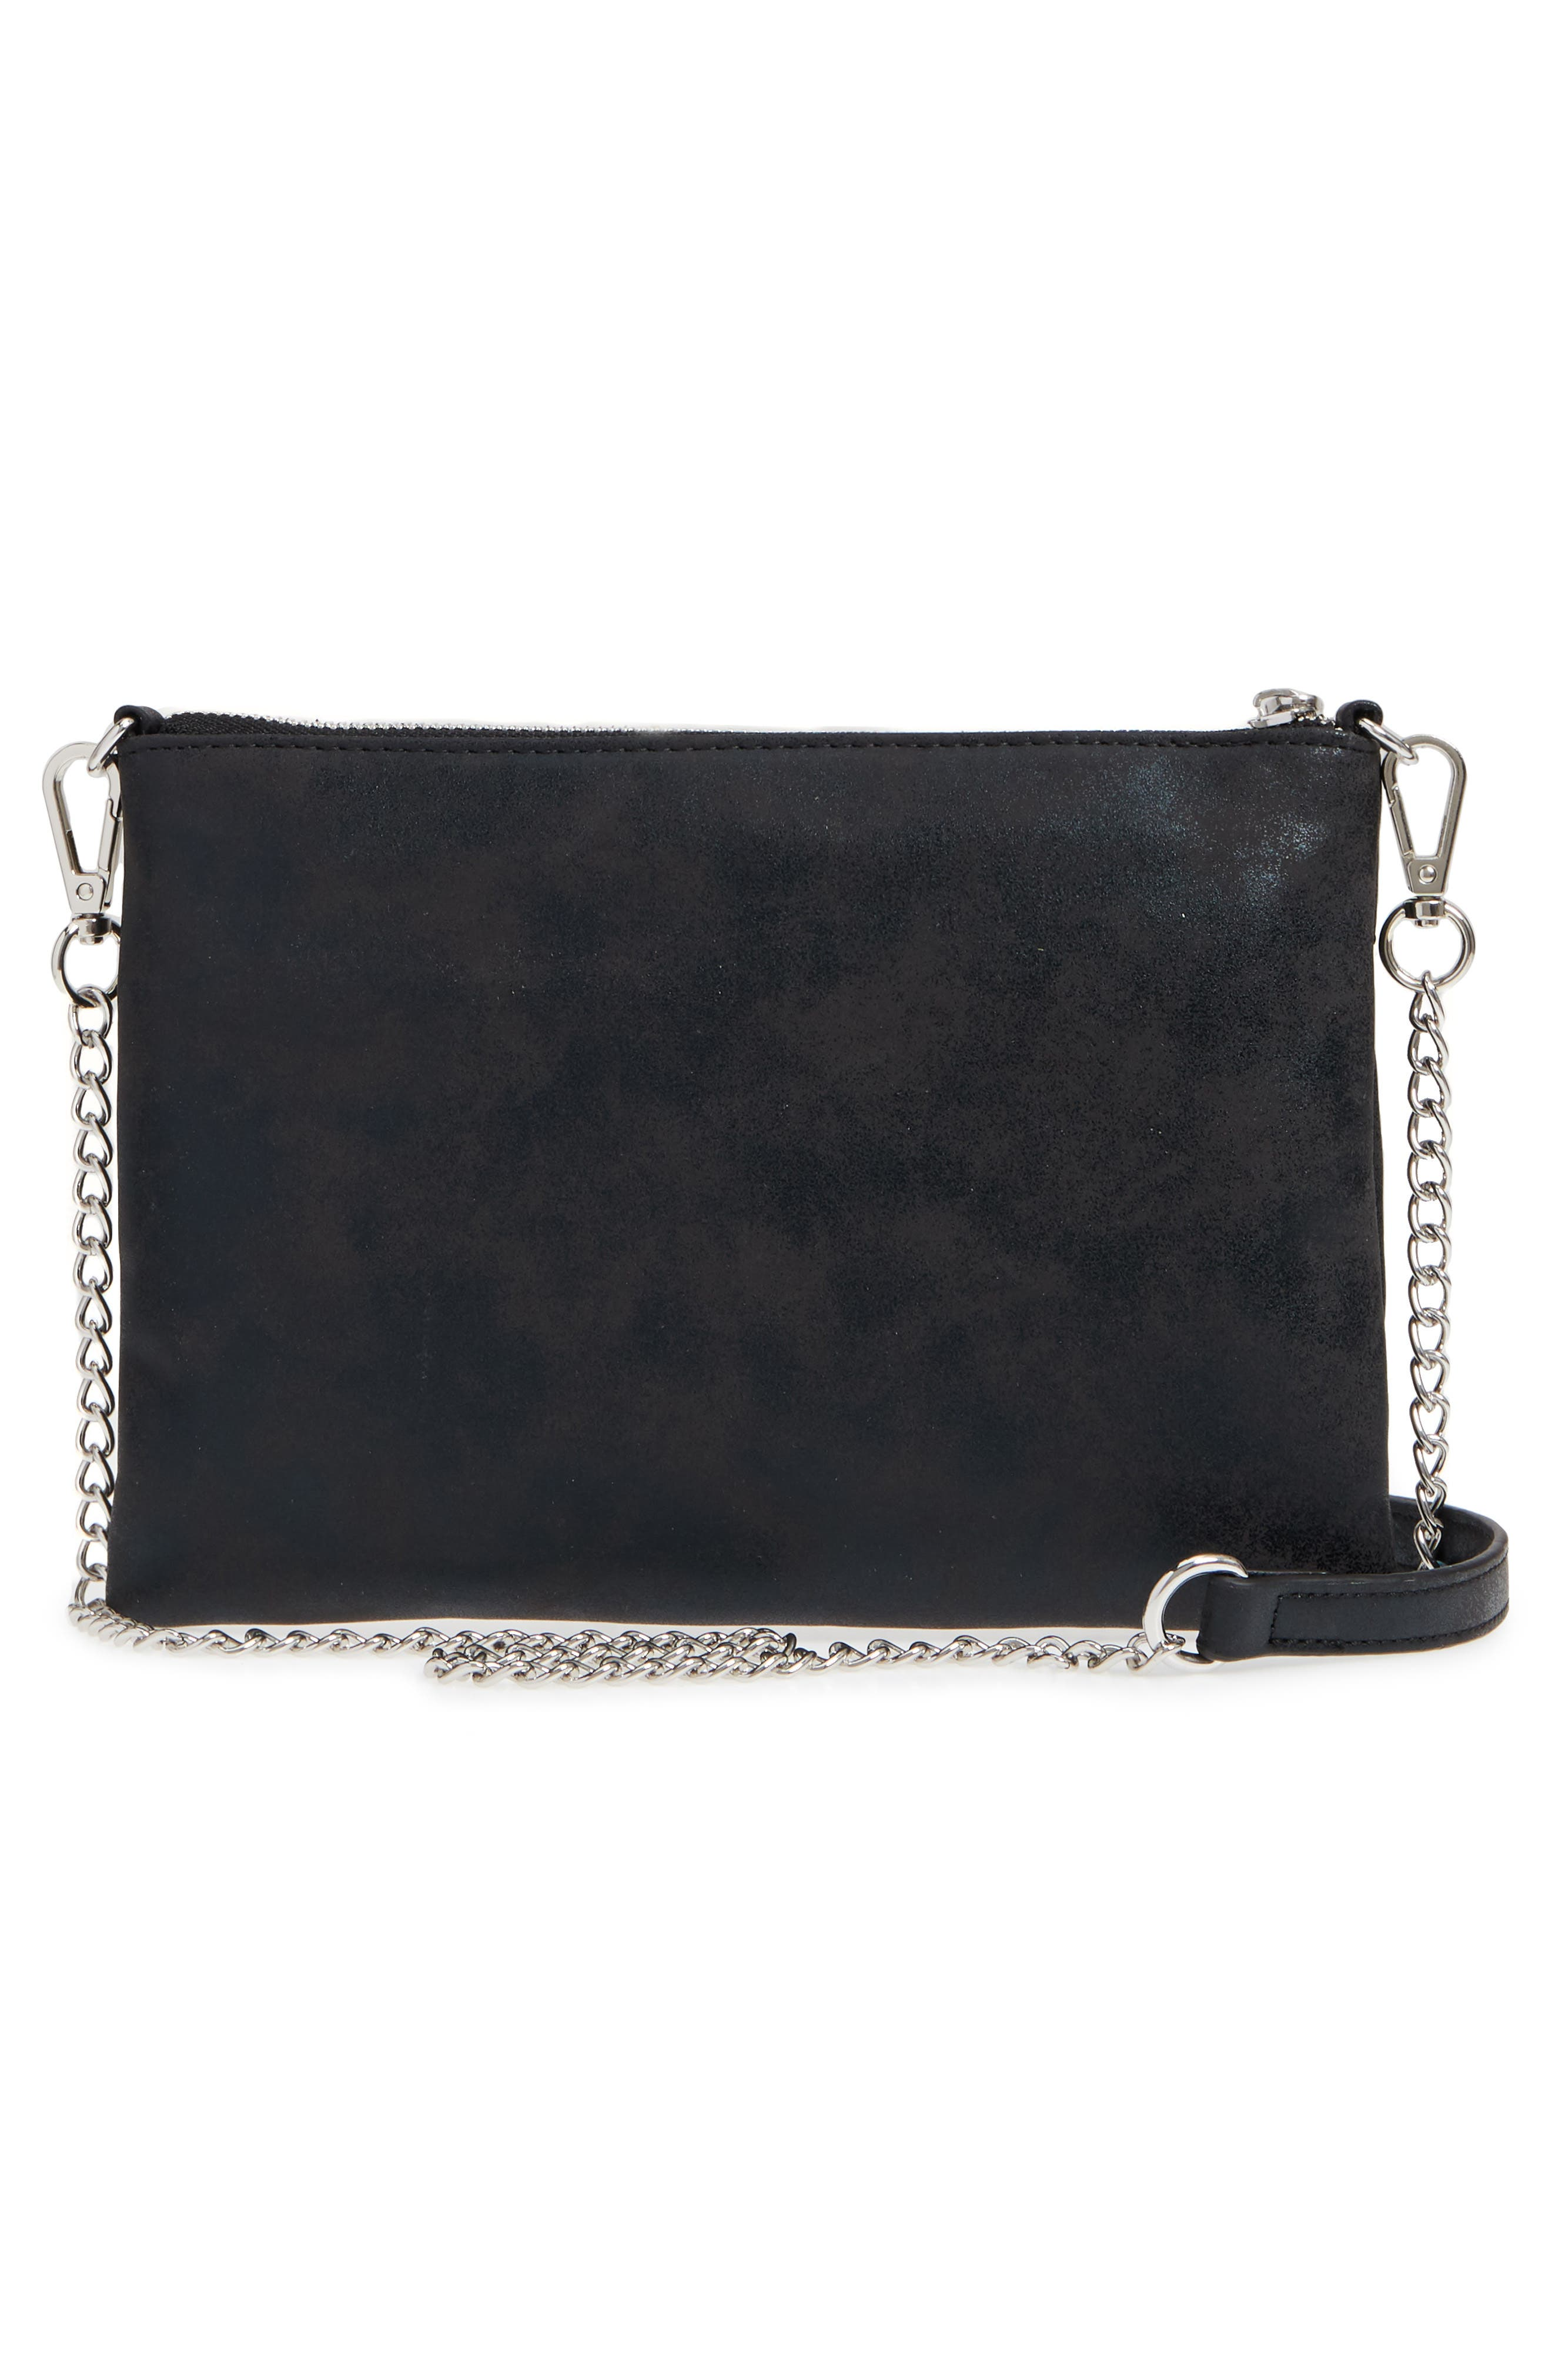 Astley Faux Leather Clutch,                             Alternate thumbnail 4, color,                             001